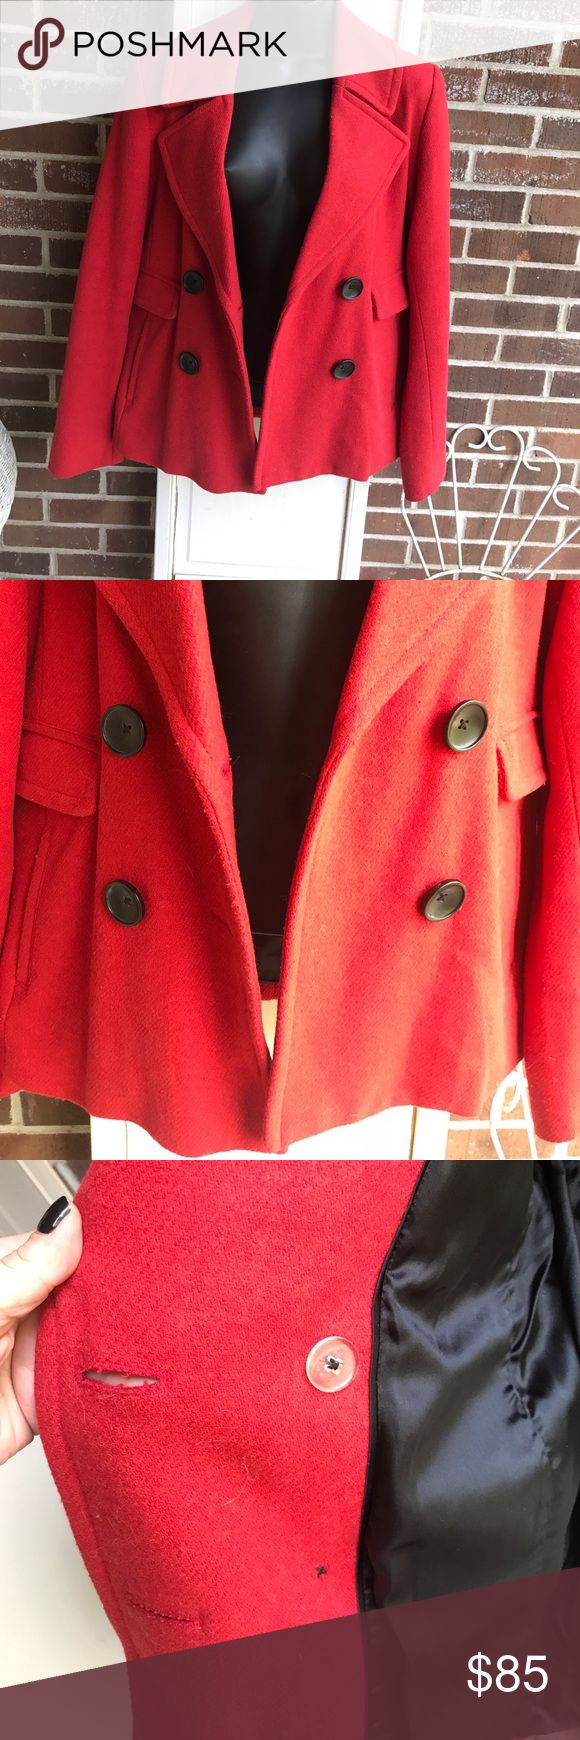 Beautiful Banana Republic peacoat wool blend Sz.Lg Beautiful red/orange wool Blend ladies Banana Republic Peacoat .... no issues , holes , stains , and lining is also without issues .... excellent pop of color for those dreary winter days ....it's a Lg , and fits true .... as I believe you should always check the brands website for their sizing chart if unfamiliar with brands fit ..it's the most accurate way of insuring a proper fit for you , since all brands sizing varies ... Banana…